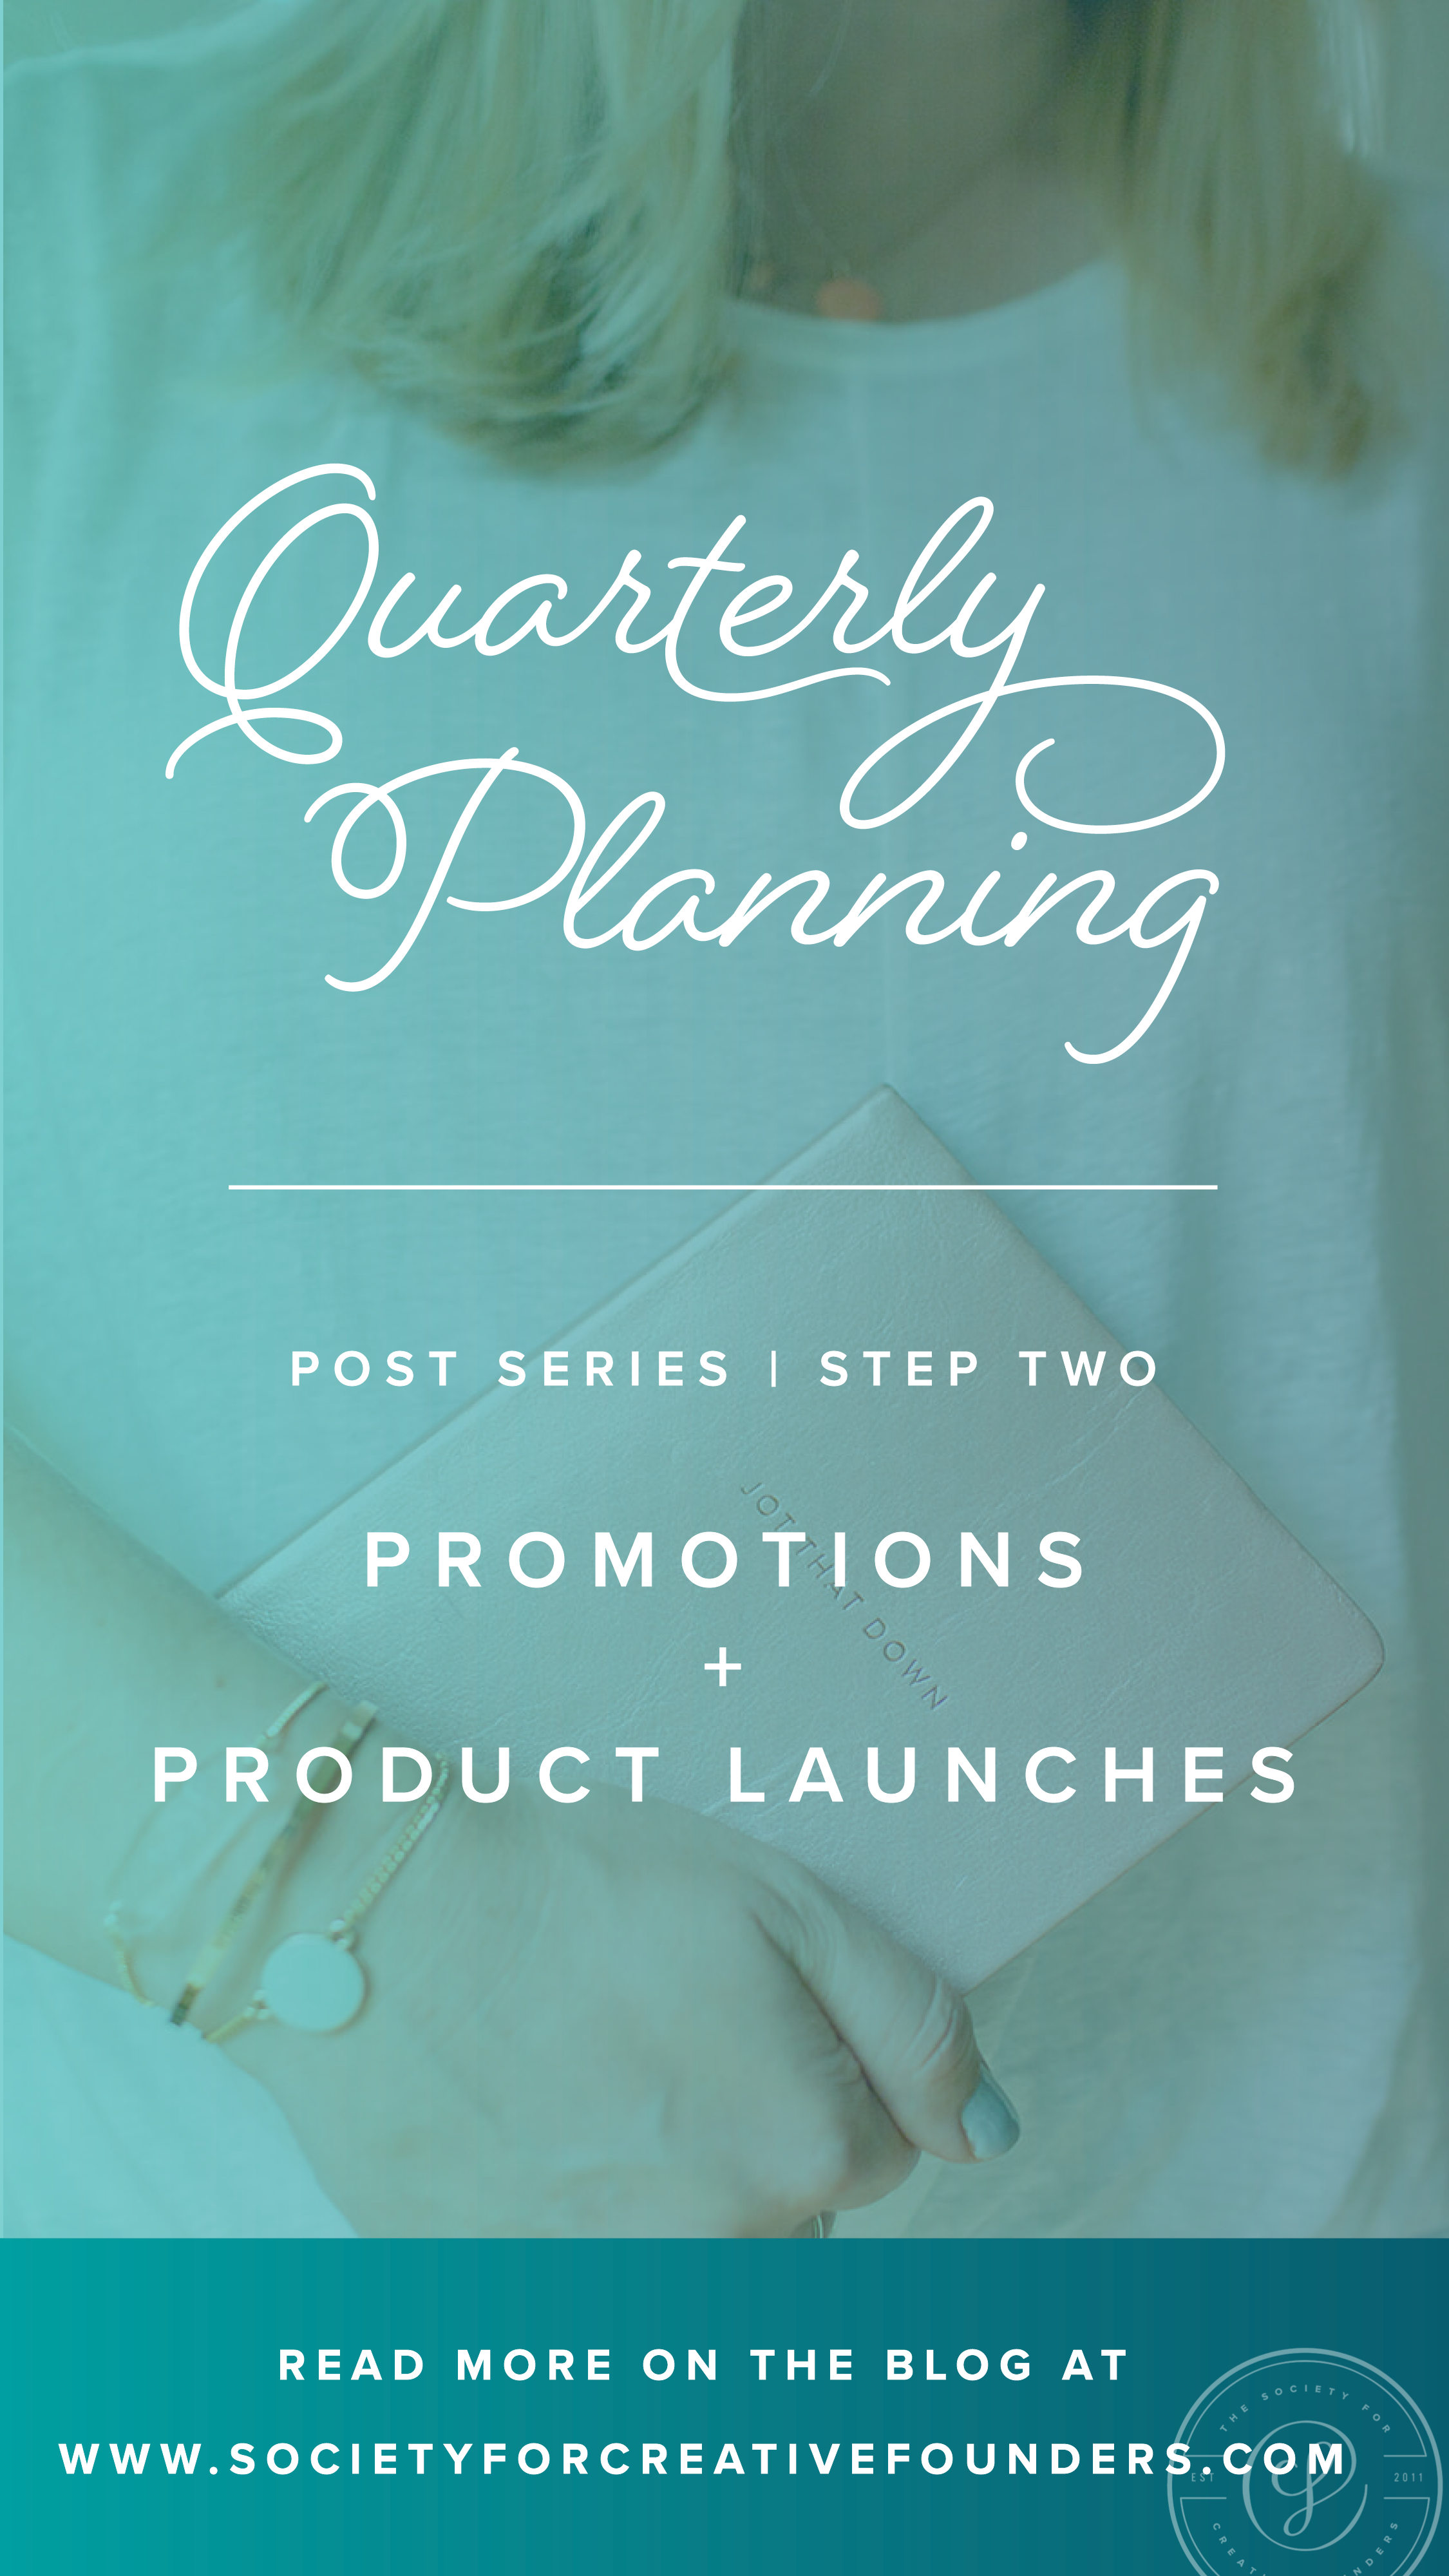 scf - 2019 blog post series - quarterly planning two2.png